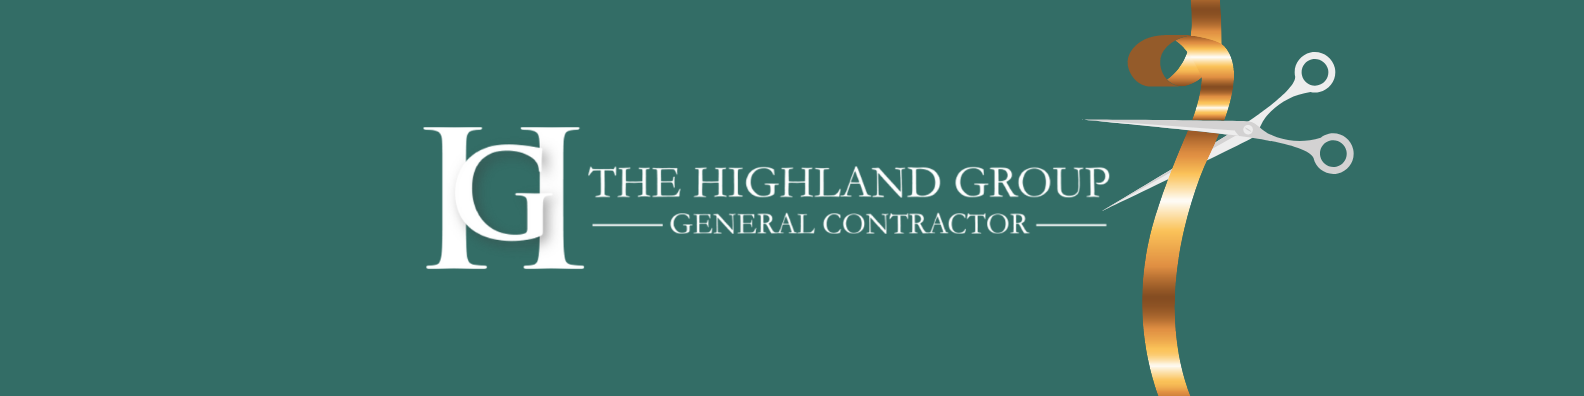 Highland Group Expands Florida Operations with Ribbon Cutting